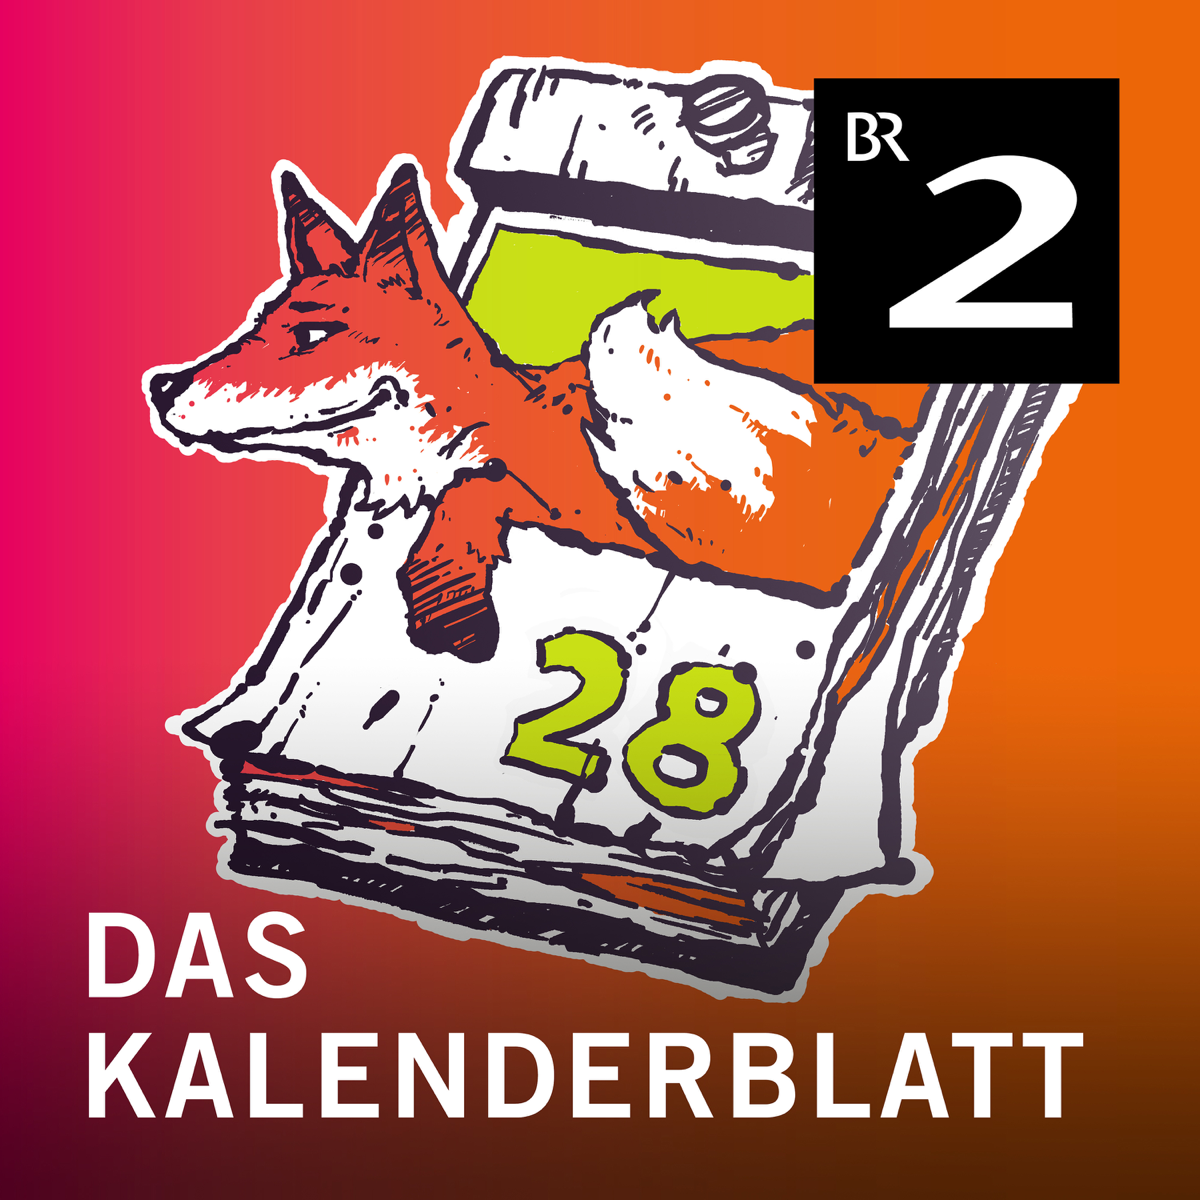 Top episodes of Das Kalenderblatt Podcast on Podyssey Podcasts